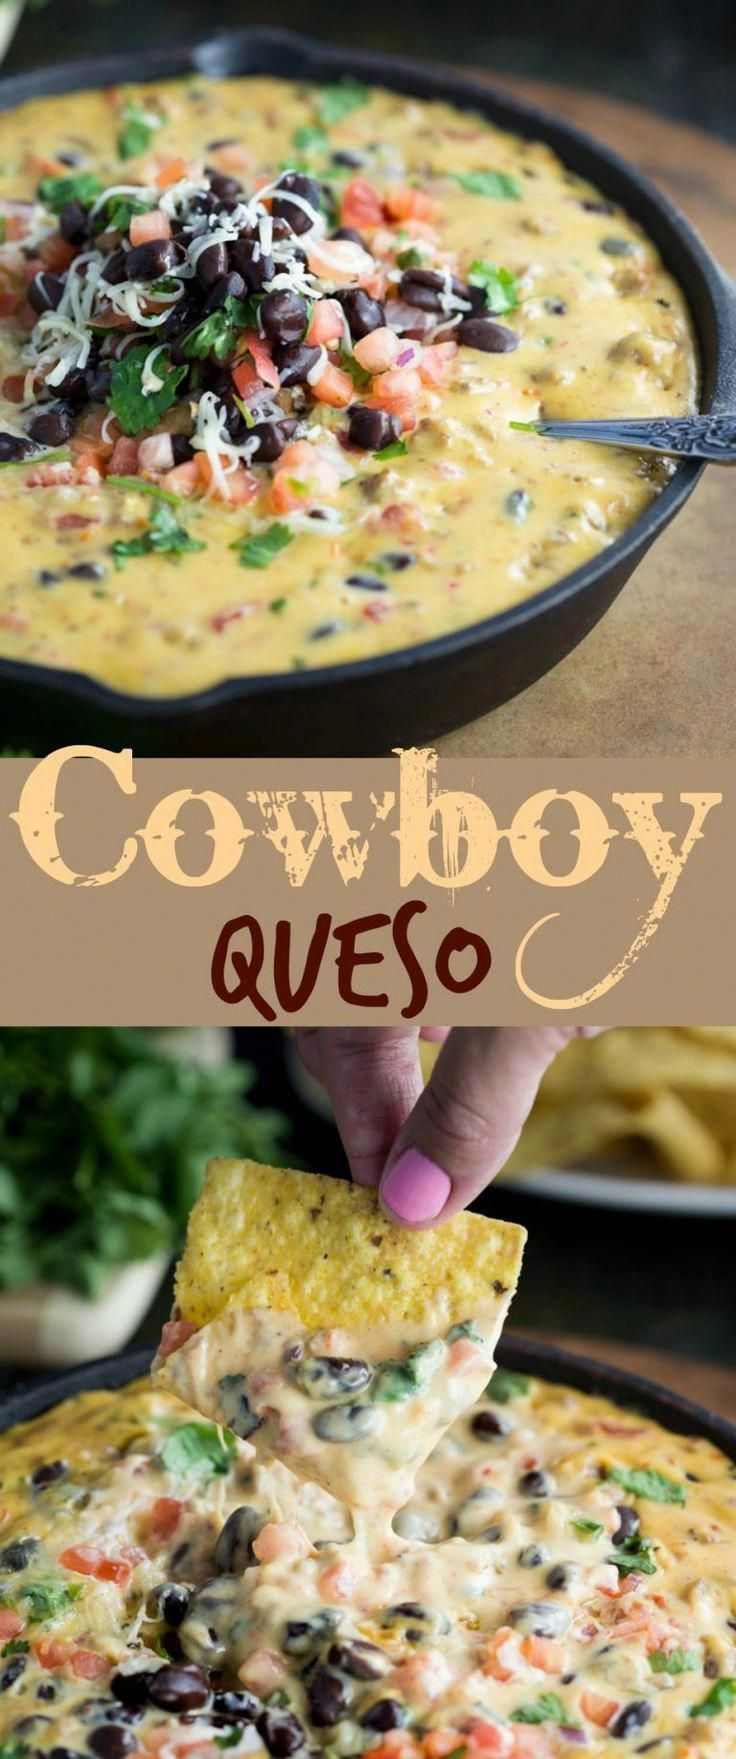 warm and savory queso dip with your favorite ale, ground beef, tomatoes, black beans, and fresh cilantro. | The Cozy Cook |